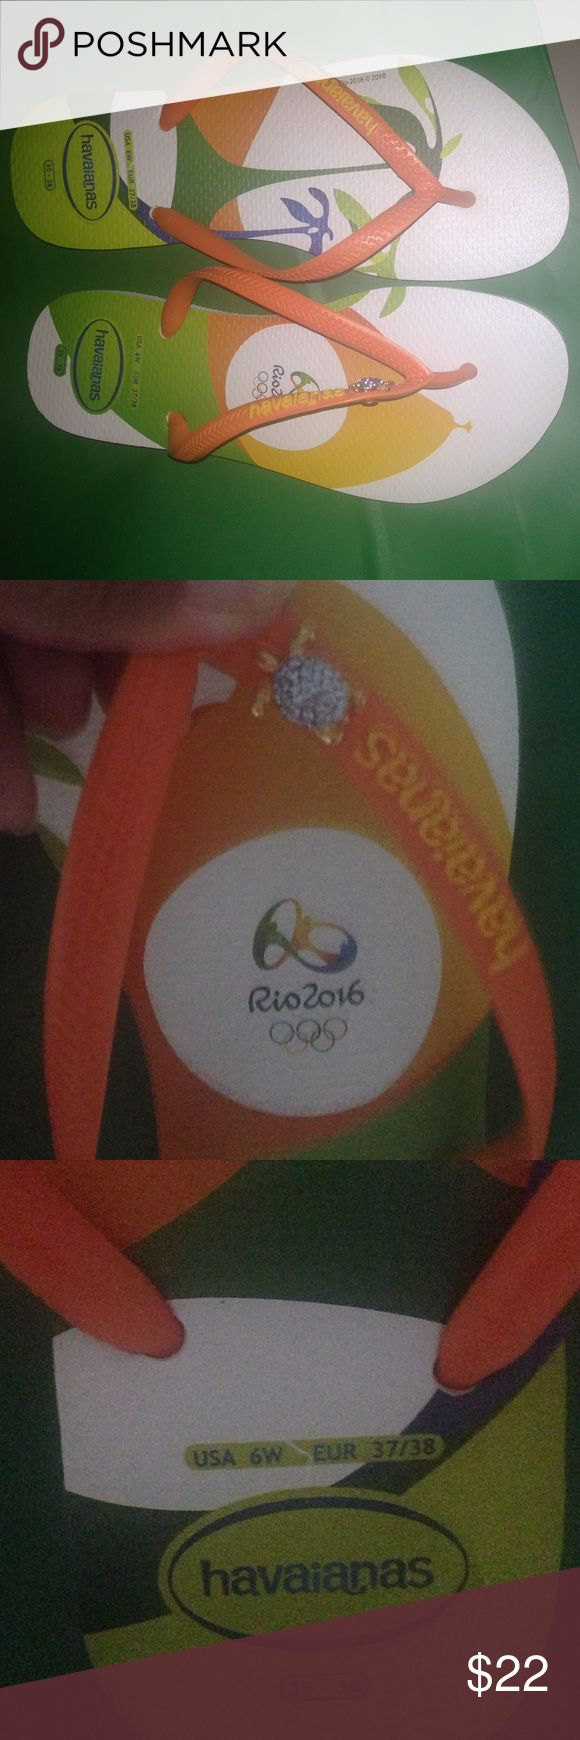 Olympic rings logo rio 2016 olympics logo designed by fred gelli - The 25 Best Rio 2016 Olympic Logo Ideas On Pinterest Rio Olympic Logo Rio Summer Olympic Logo And Rio 2016